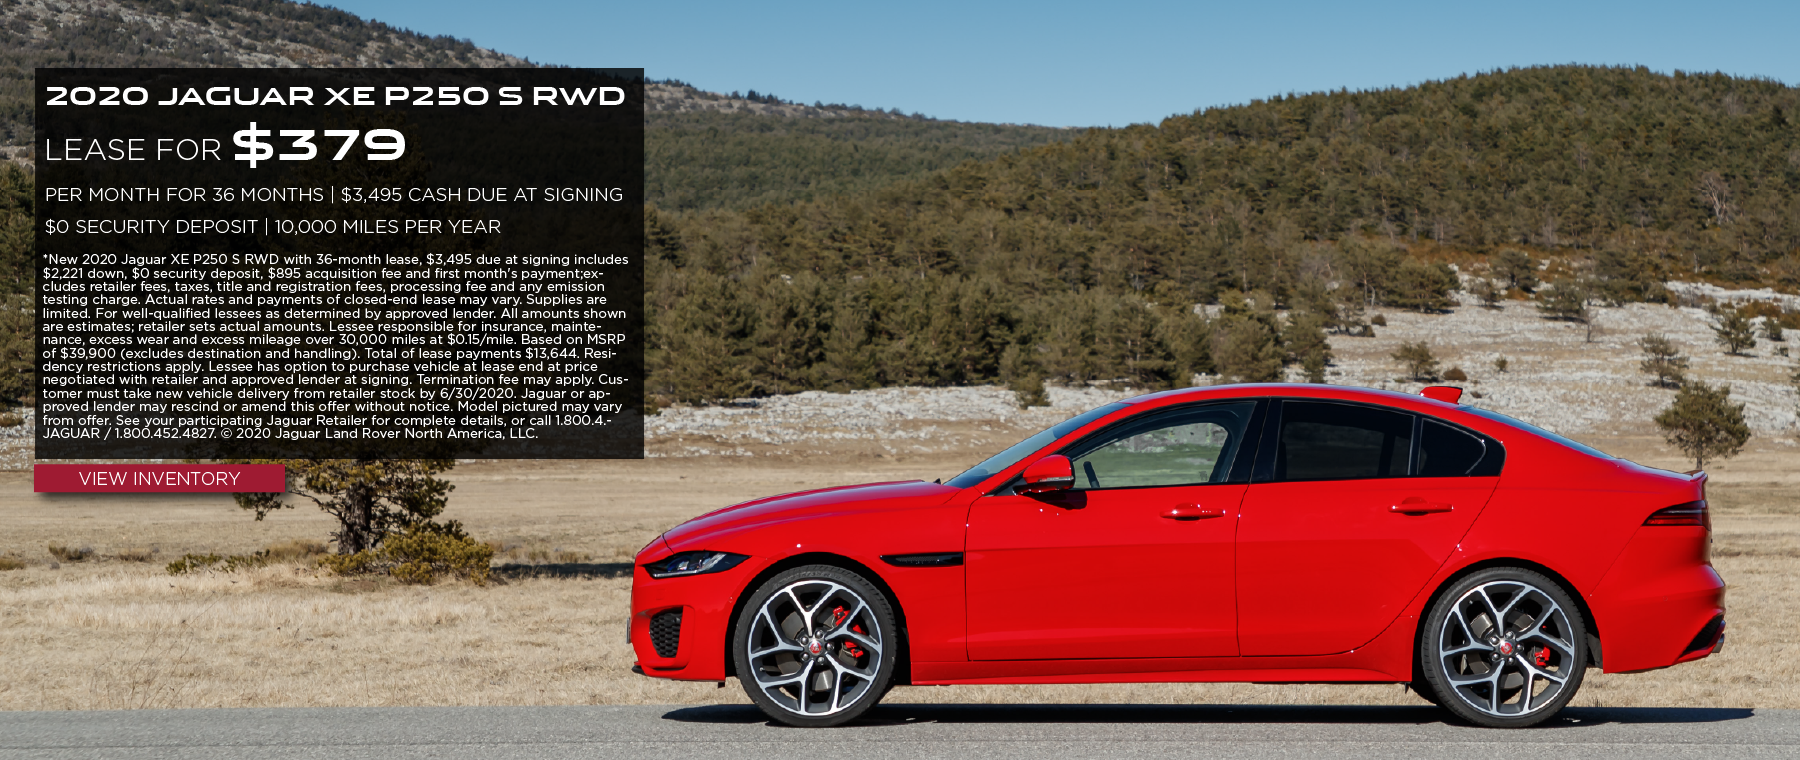 2020 JAGUAR XE P250 S RWD. $379 PER MONTH. 36 MONTH LEASE TERM WITH $3,495 DUE AT SIGNING. $0 SECURITY DEPOSIT. 10,000 MILES PER YEAR. EXCLUDES RETAILER FEES, TAXES, TITLE AND REGISTRATION FEES, PROCESSING FEE AND ANY EMISSION TESTING CHARGE. OFFER ENDS 6/30/2020. VIEW INVENTORY. RED JAGUAR XE DRIVING DOWN ROAD IN COUNTRYSIDE.